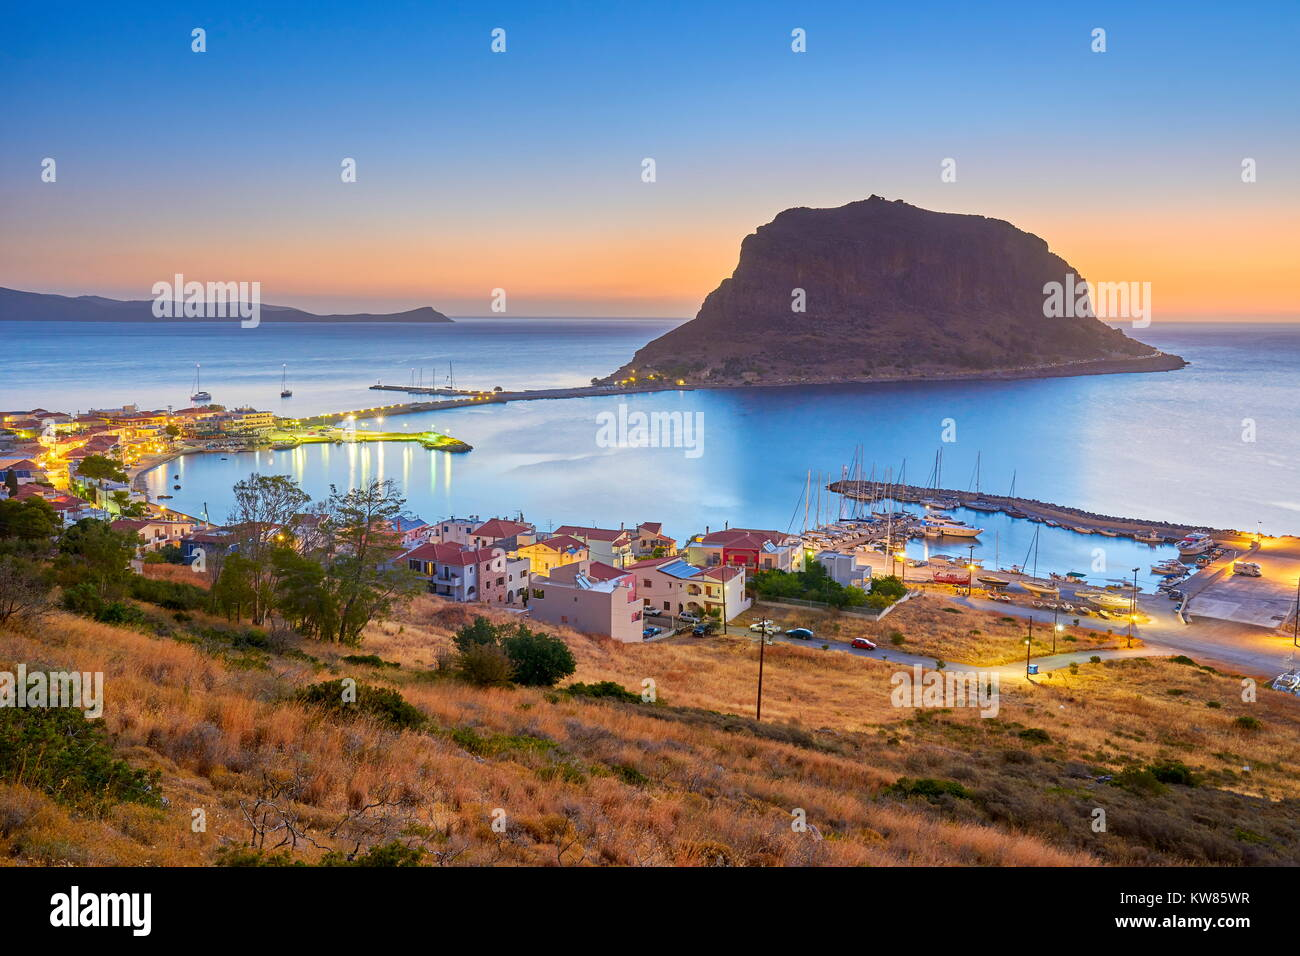 Monemvasia, Peloponnese, Greece - Stock Image